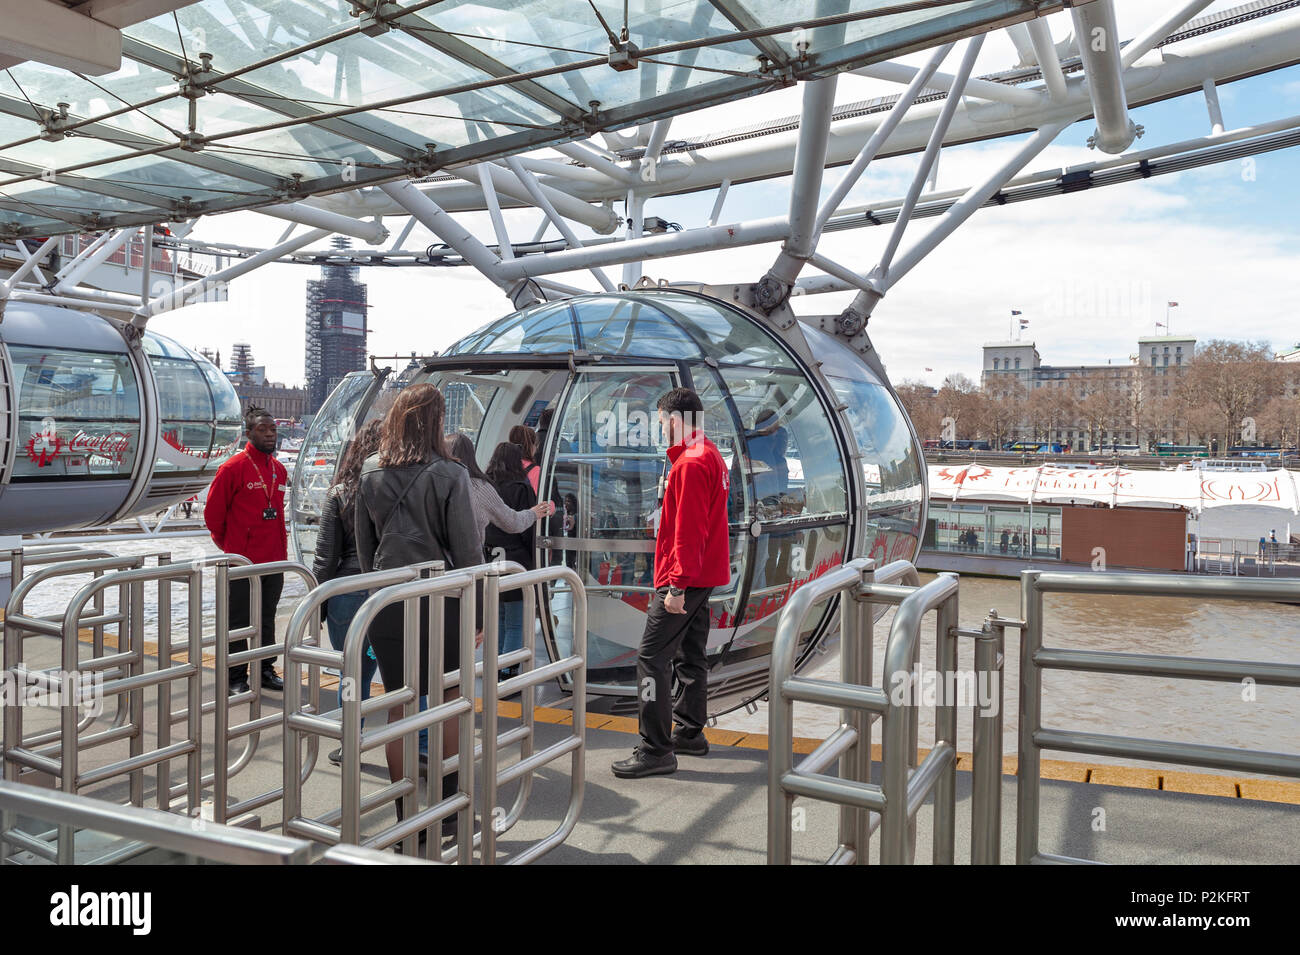 Passengers queuing to board a capsule of the London Eye, a popular giant Ferris wheel, iconic landmark of London, located by River Thames in London - Stock Image